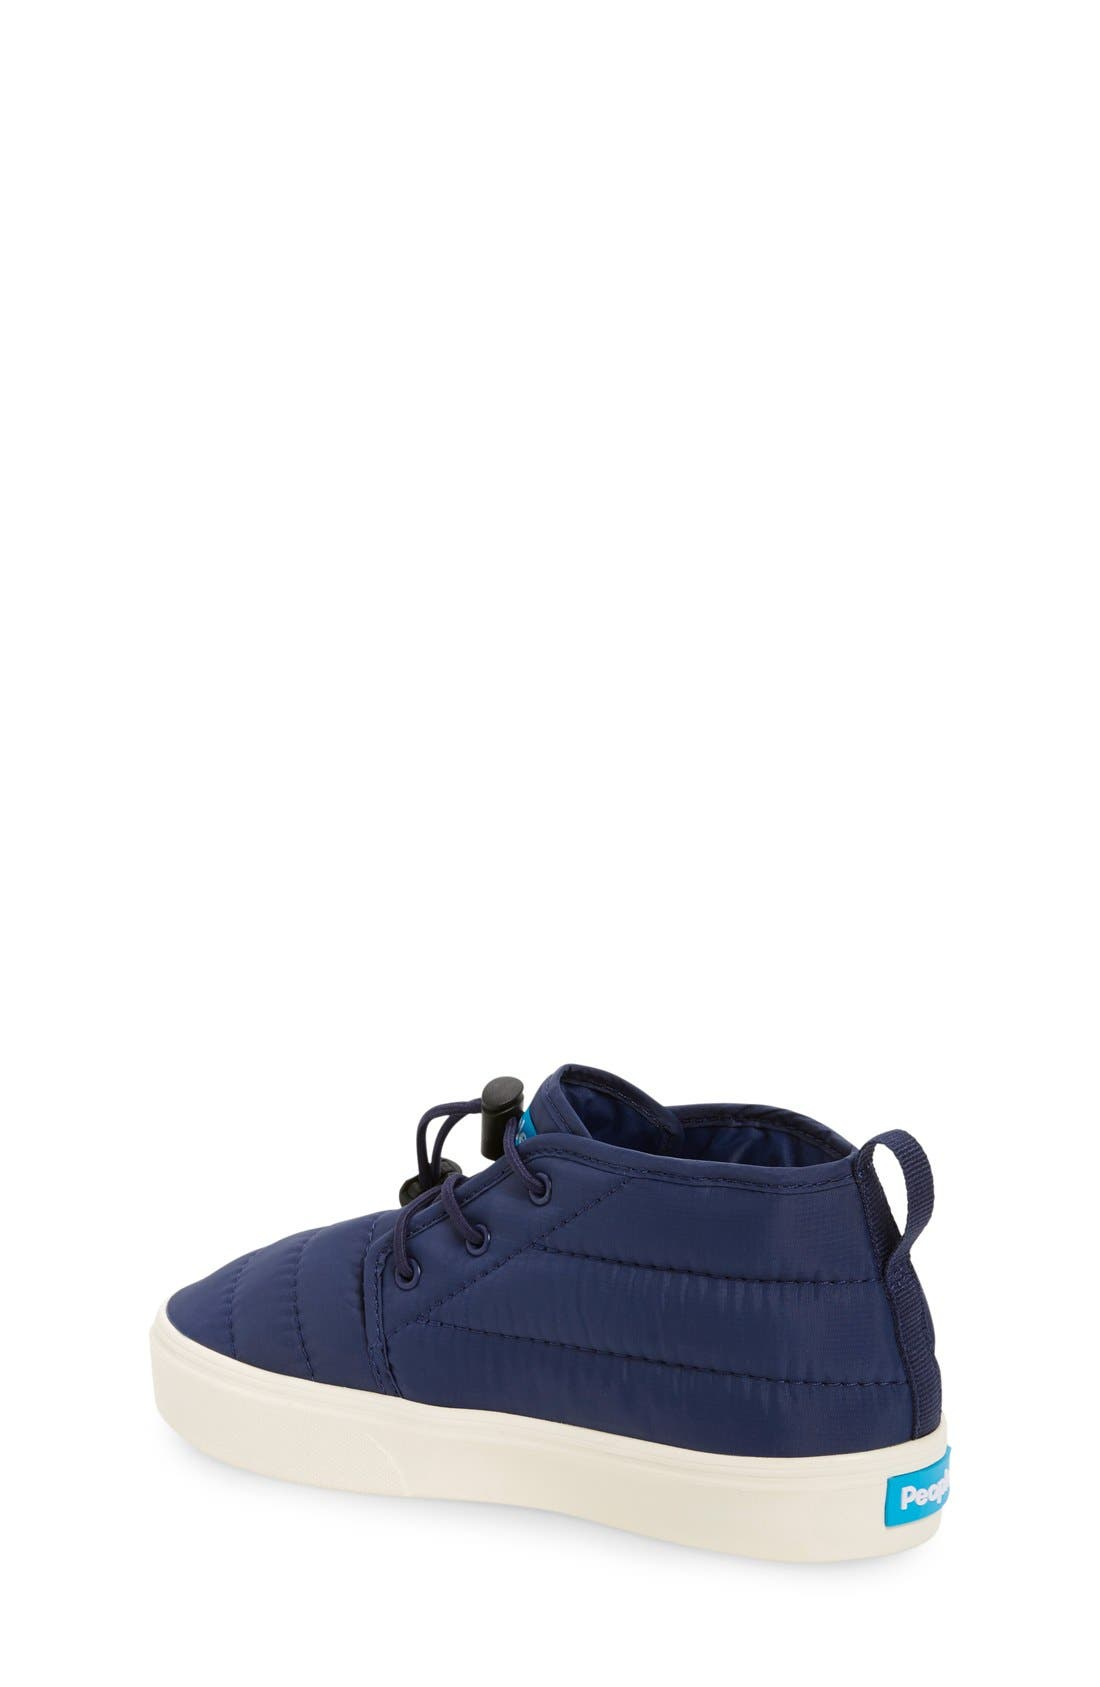 'Cypress' Sneaker,                             Alternate thumbnail 4, color,                             MARINER BLUE/ PICKET WHITE